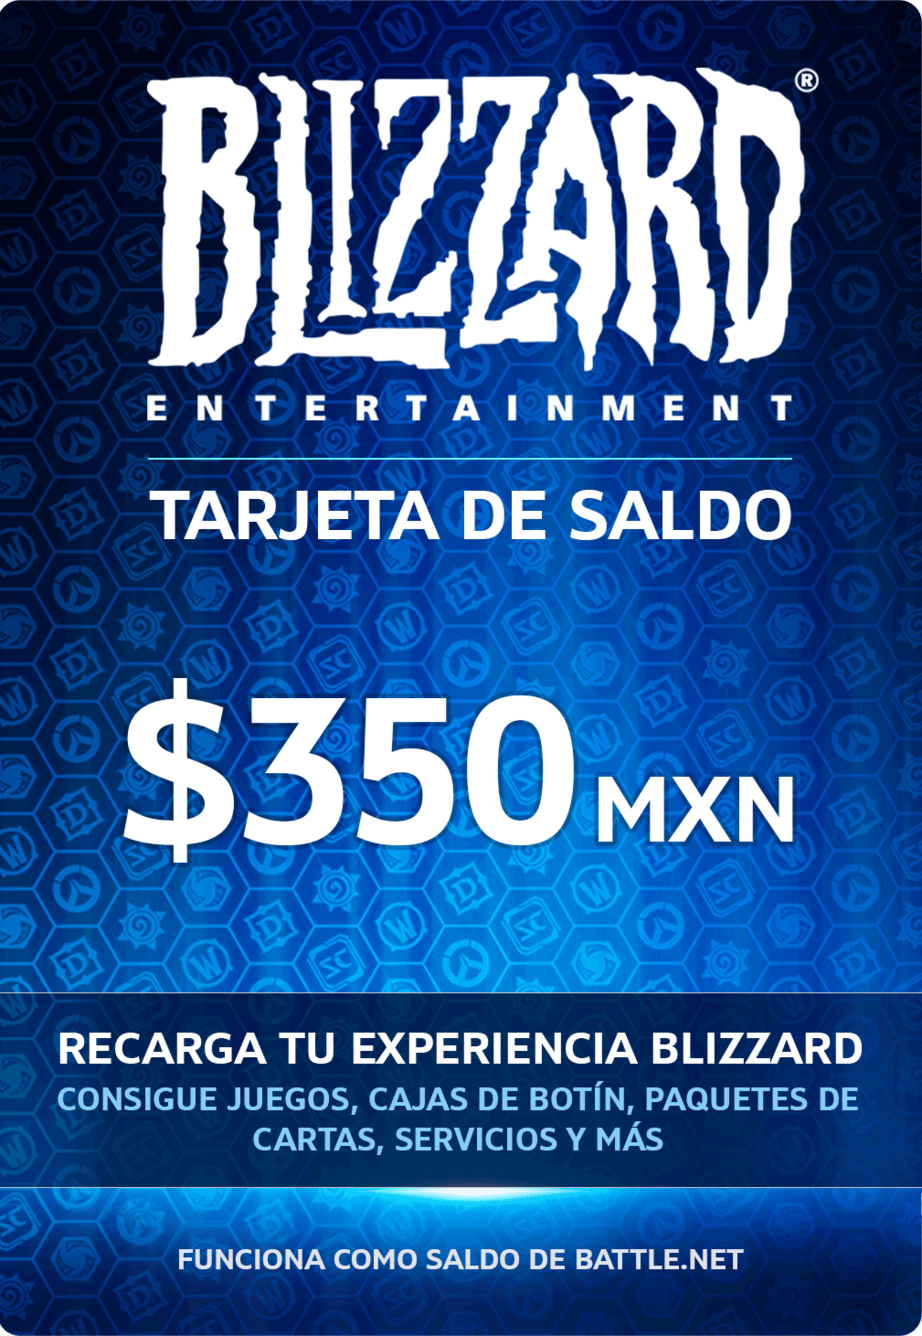 Saldo digital Blizzard $350 MXN